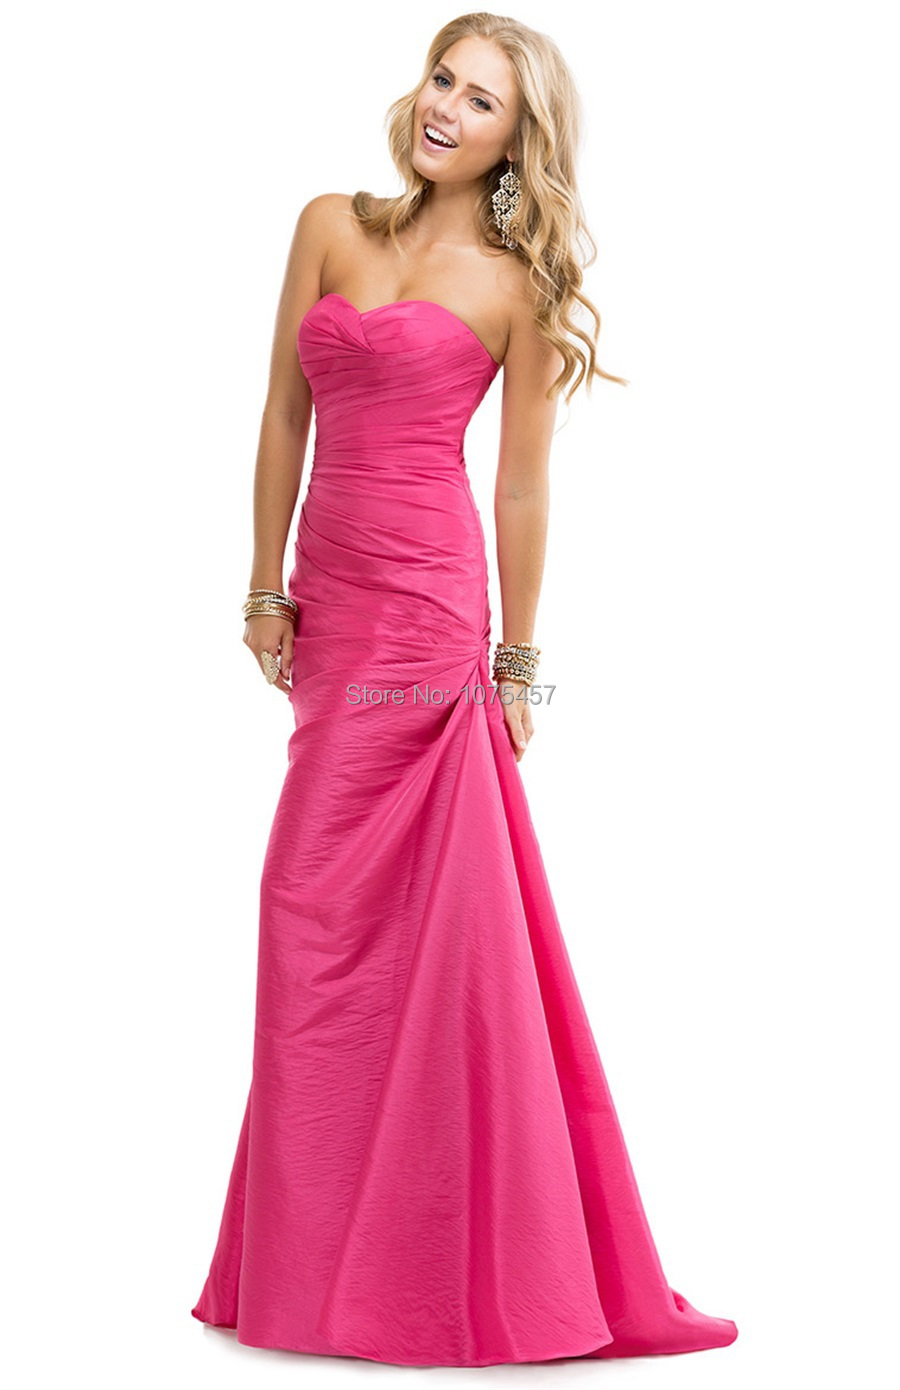 Popular Hot Pink Evening Gowns-Buy Cheap Hot Pink Evening Gowns ...